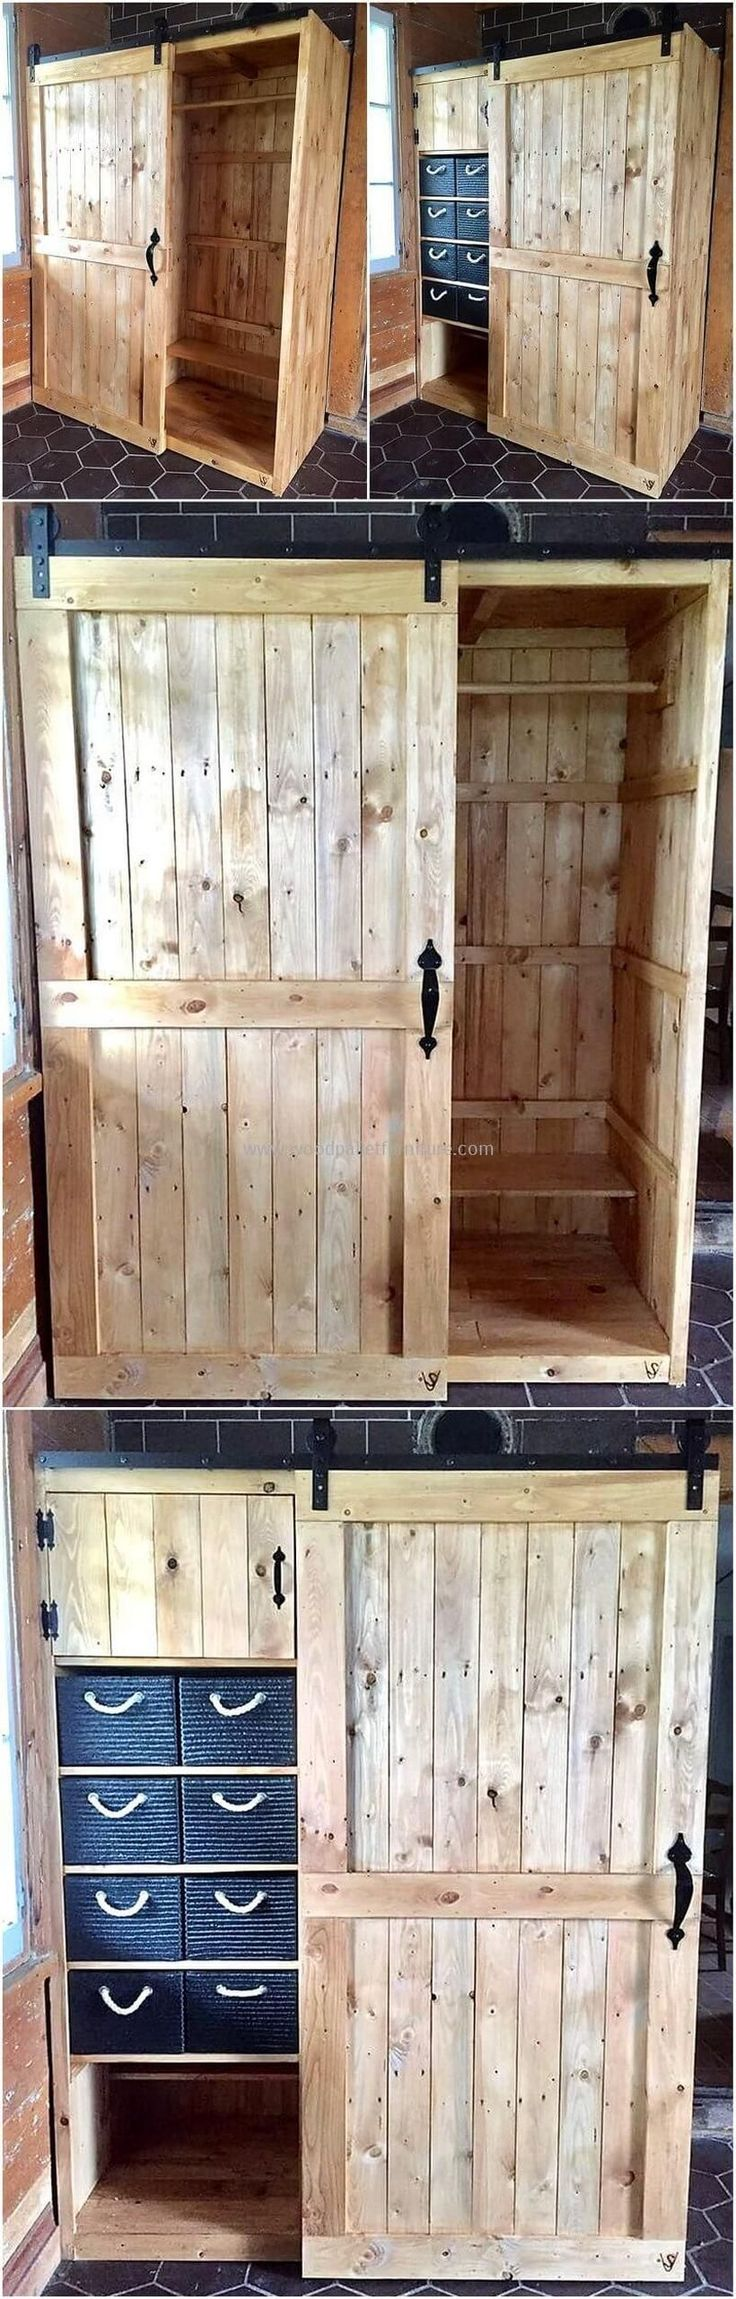 This is another decent design of upcycled pallet wood closet. This project is uniquely created in a delightful way to provide you the best closet for your place. It's easily movable wooden door and large storage space will definitely able you to keep different essential items in it. #pallets #woodpallet #palletfurniture #palletproject #palletideas #recycle #recycledpallet #reclaimed #repurposed #reused #restore #upcycle #diy #palletart #pallet #recycling #upcycling #refurnish #recycled #wood